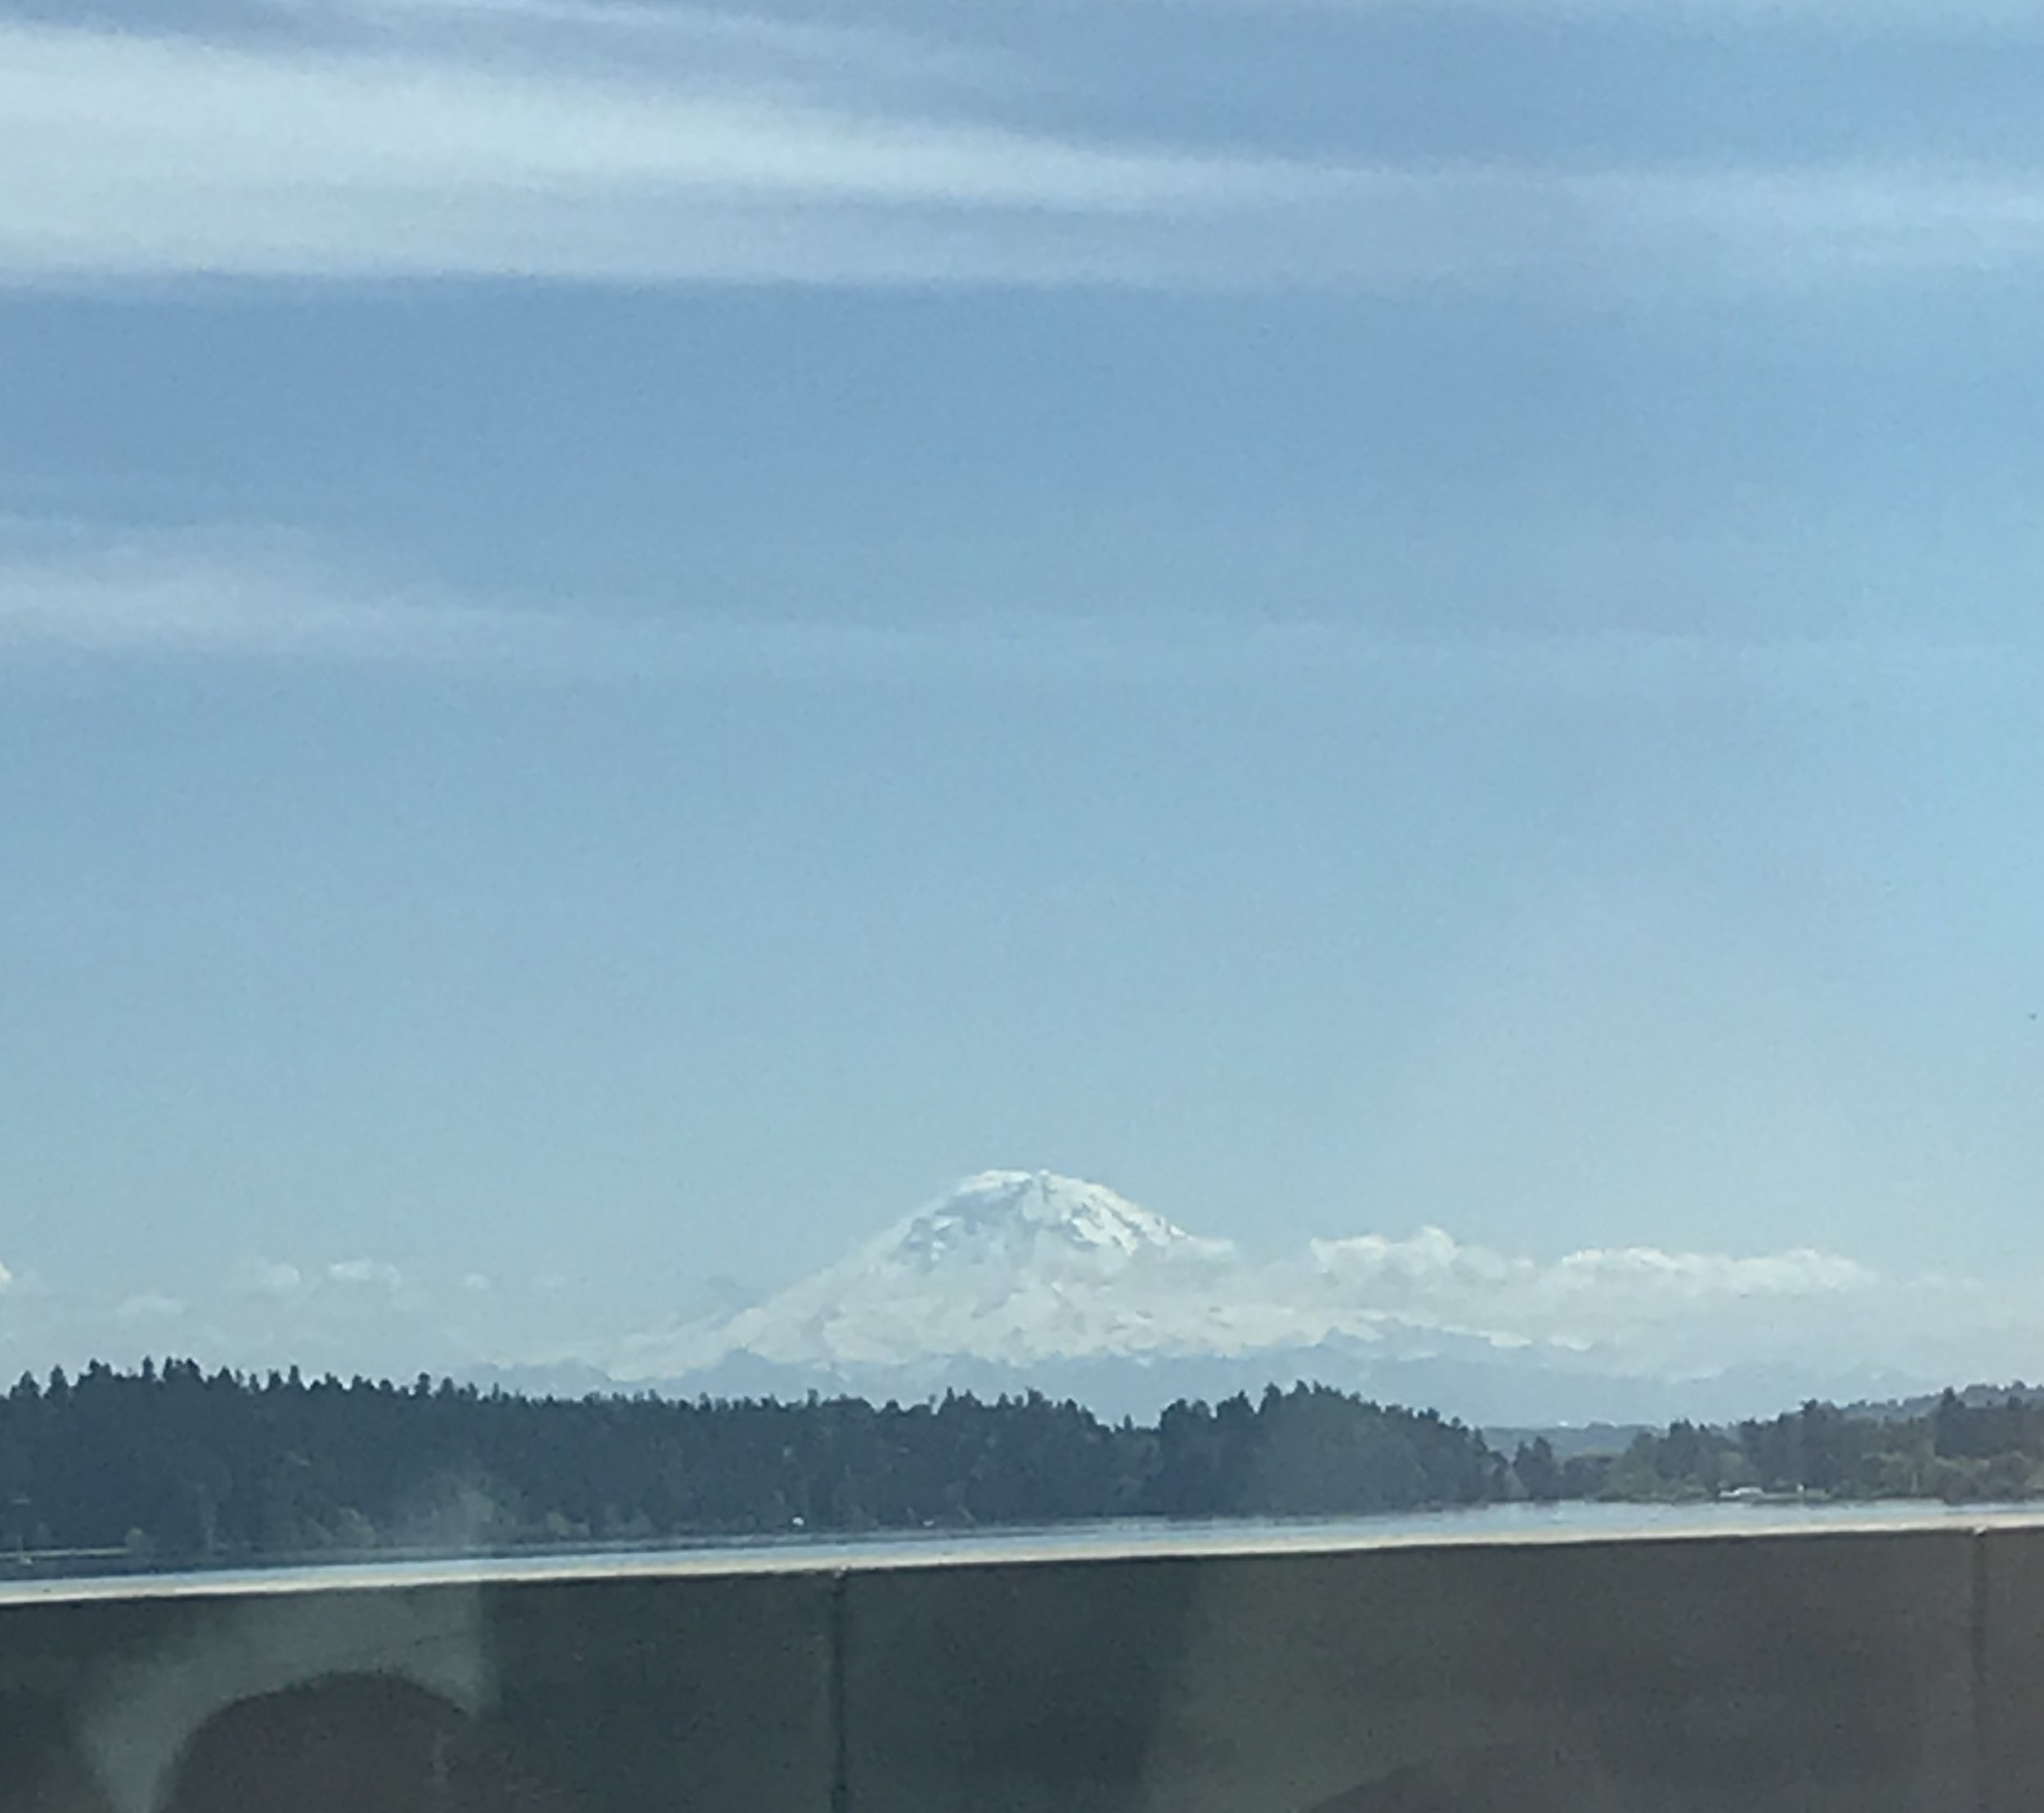 I snapped this shot while my friend drove me home from a doctor appointment. I love Mt. Rainier but have never hiked on it! I kinda gave it up in a divorce in my twenties and then moved away (long story). I hope I can get there one day despite my health issues.